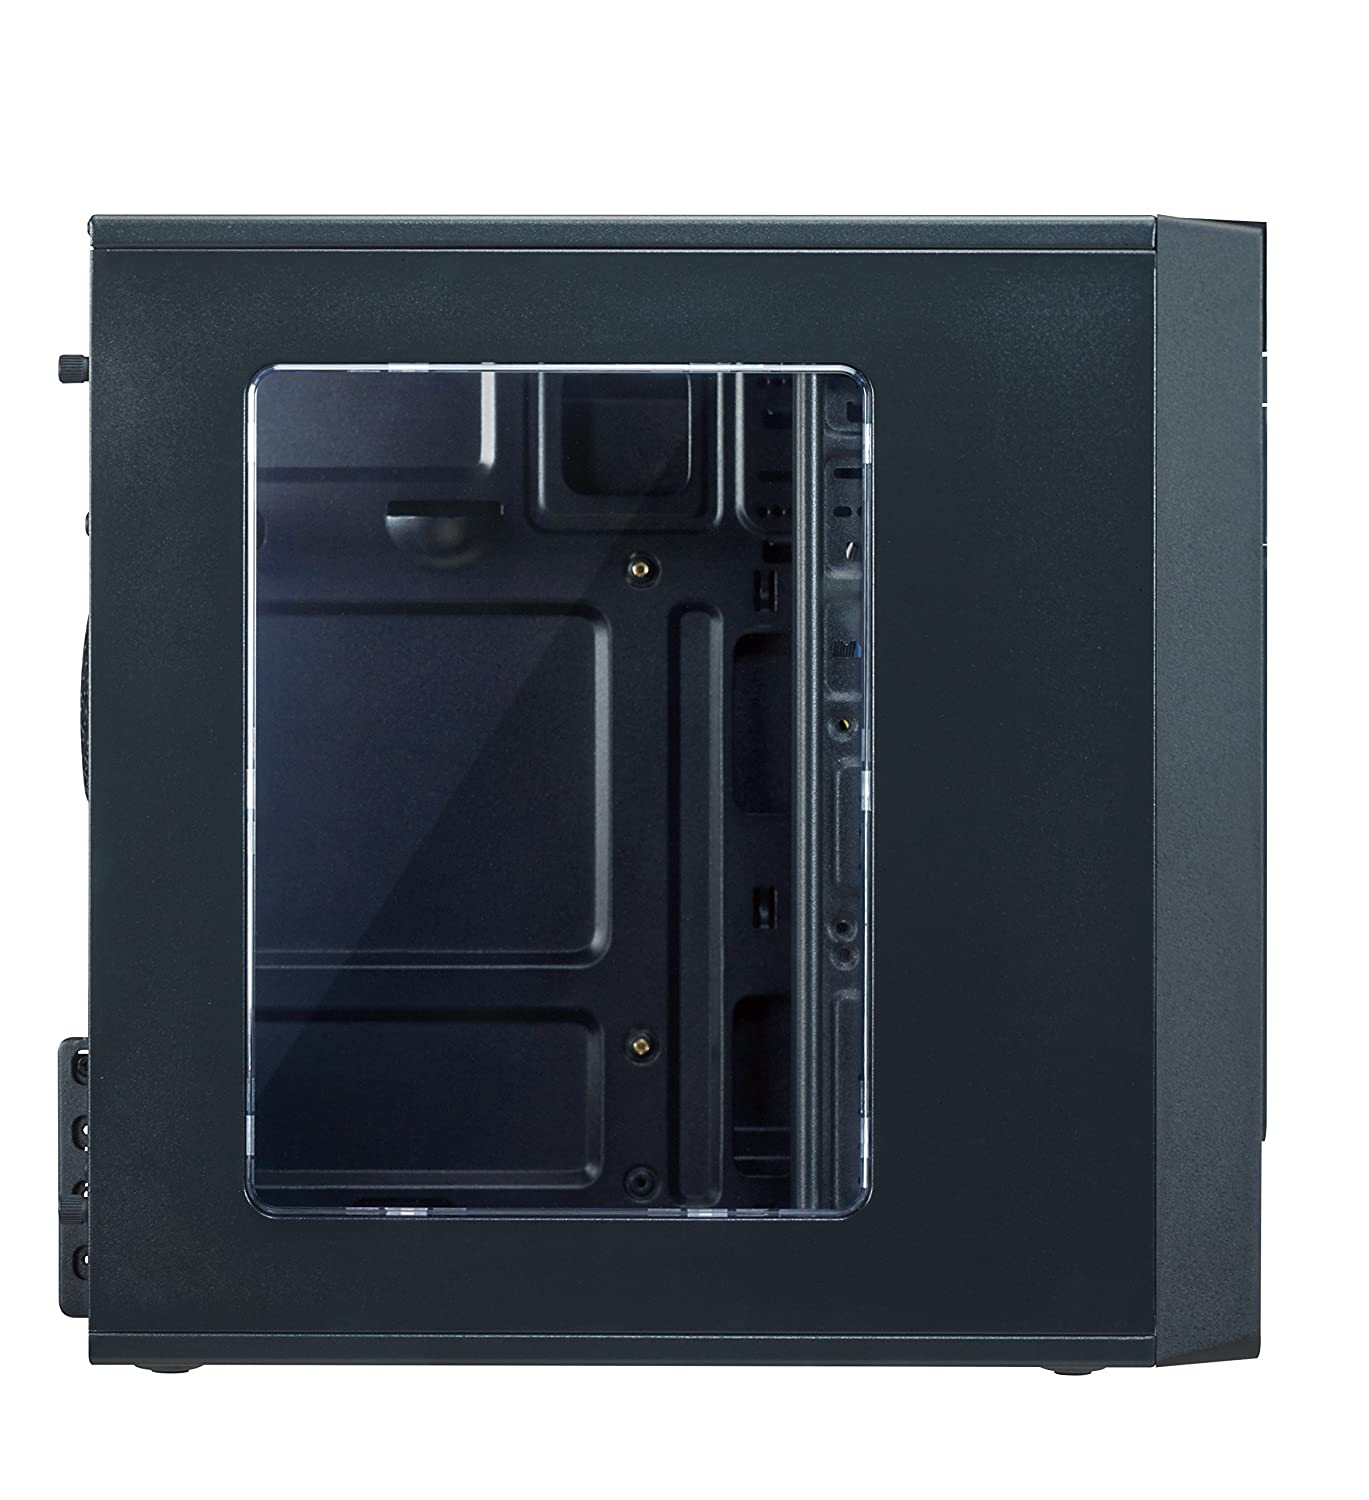 Steel and plastic computer case with 1x 120mm front fan and 1x 80mm rear fan 2x USB 2.0 and Audio ports ROSEWILL Micro ATX Mini Tower Computer Case FBM-05 Top I//O ports: 1x USB3.0